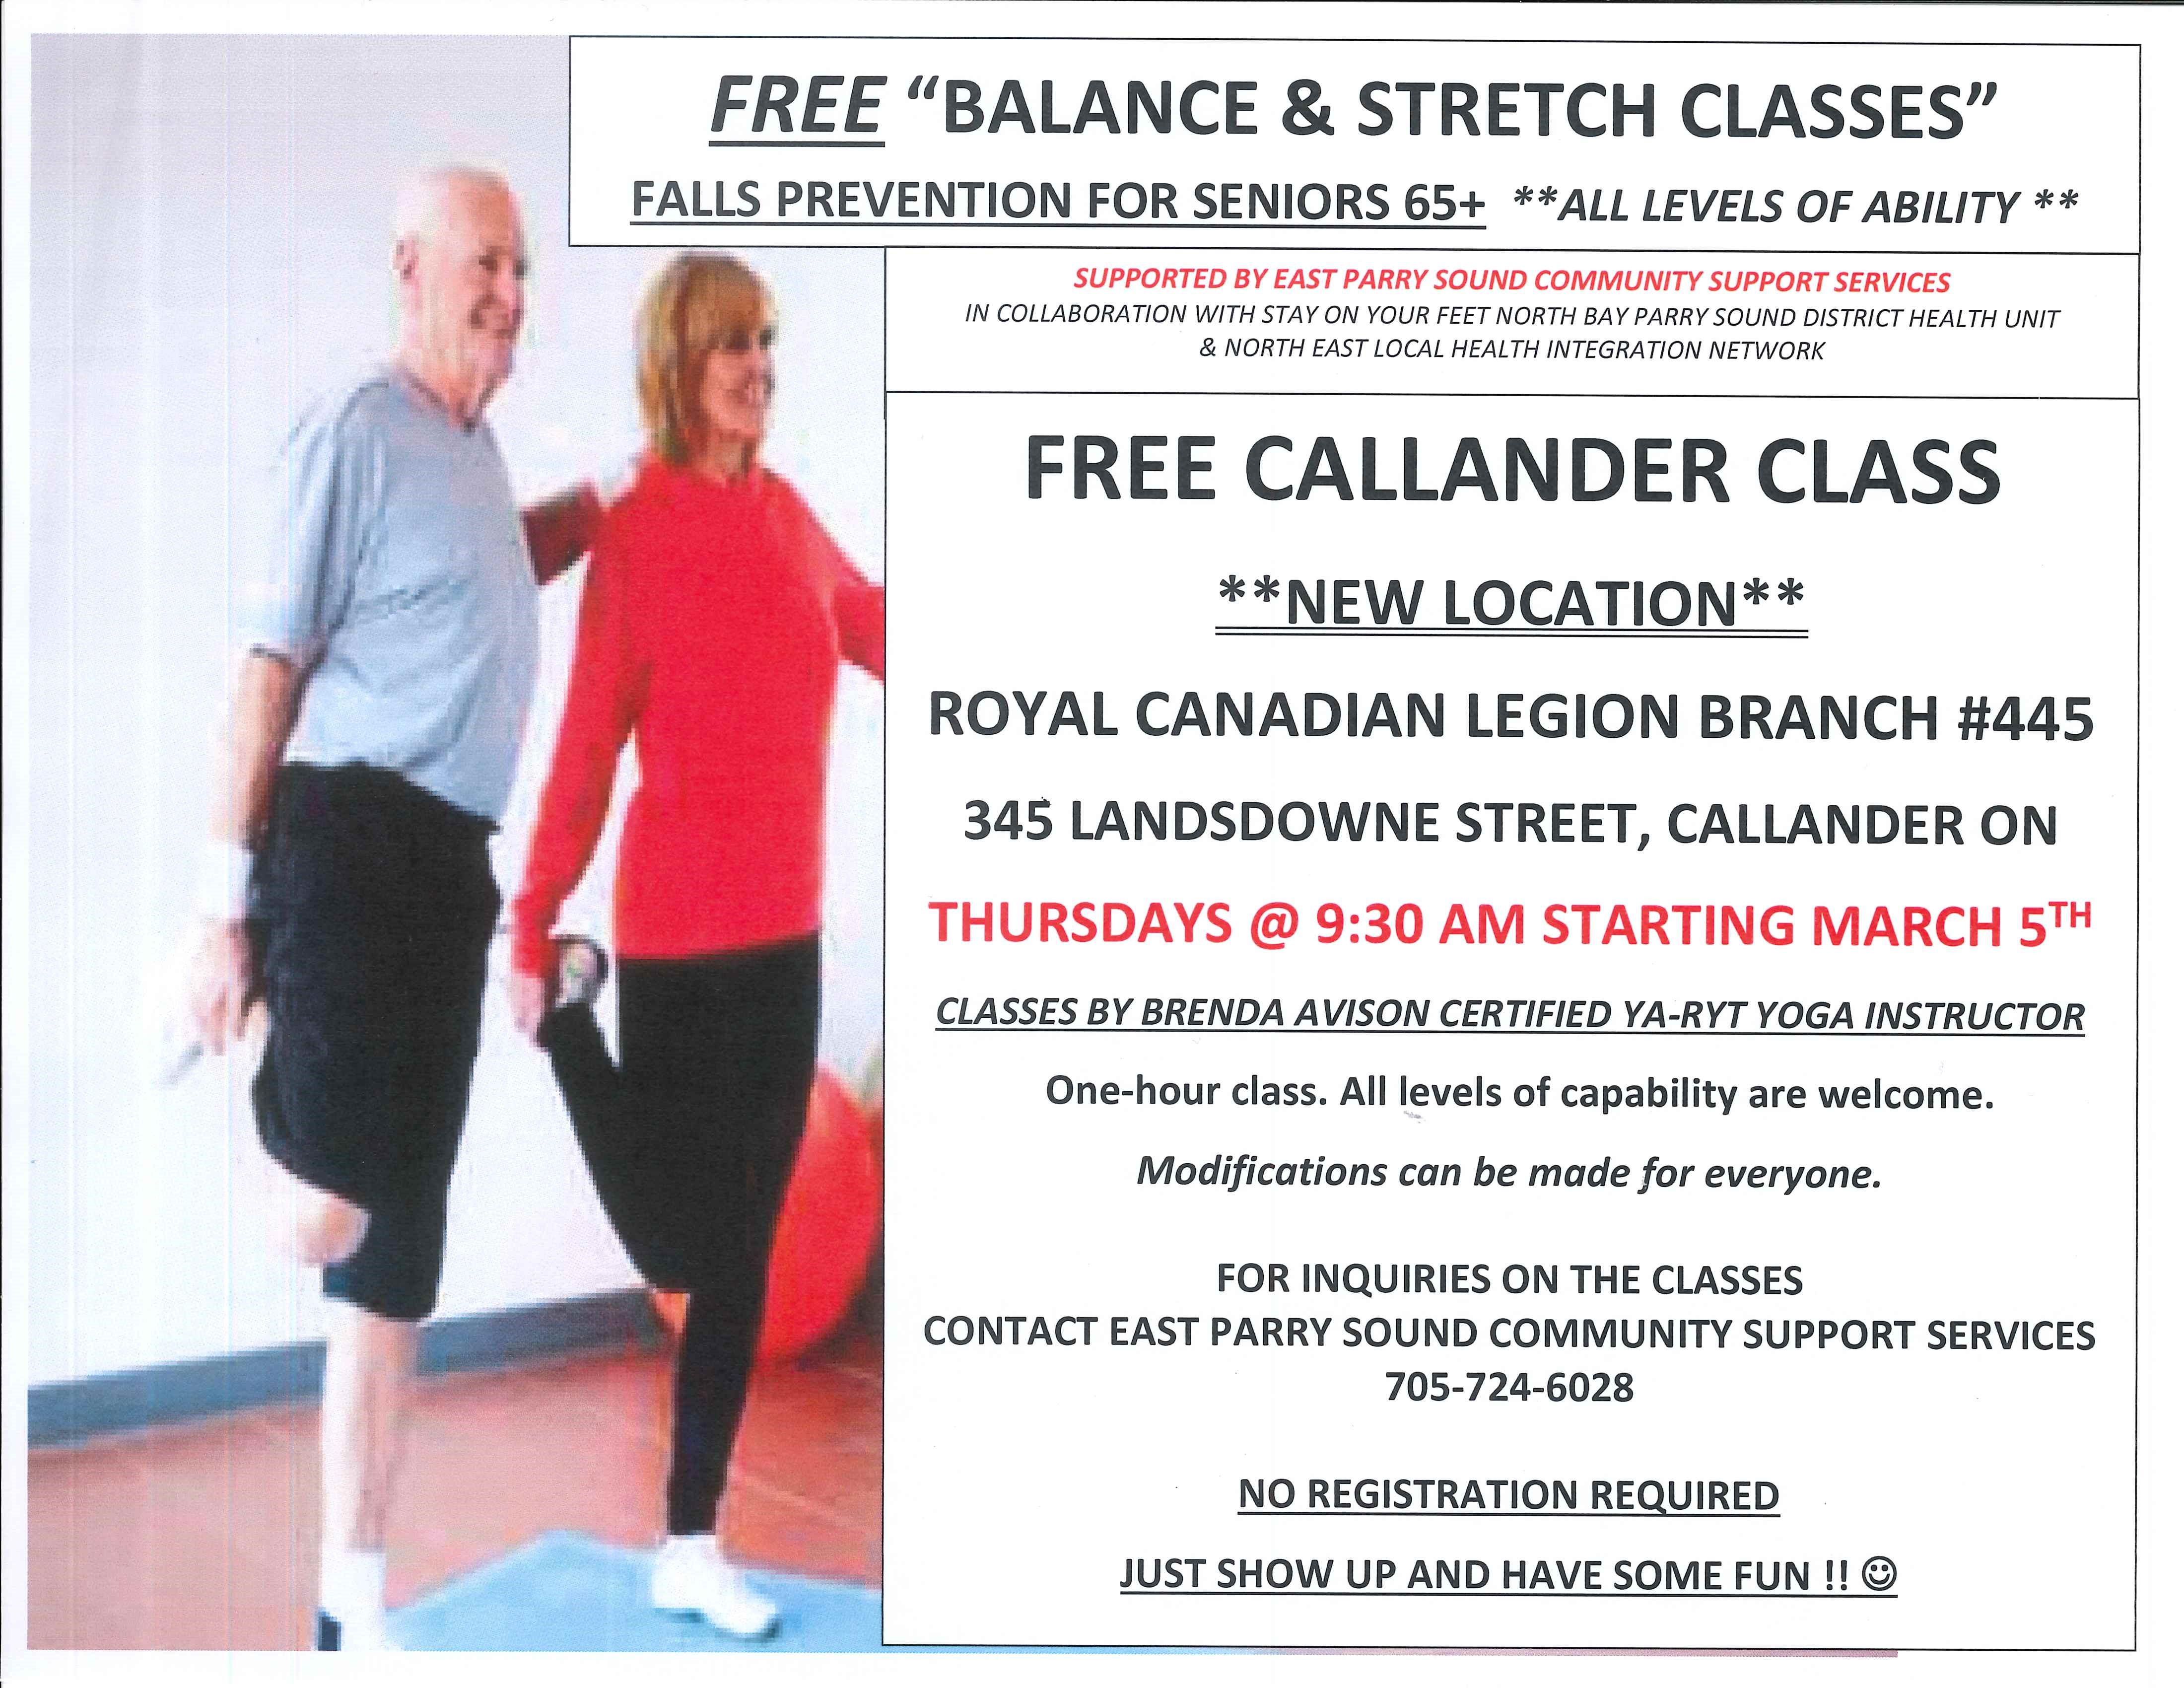 Free balance and stretch classes in Callander